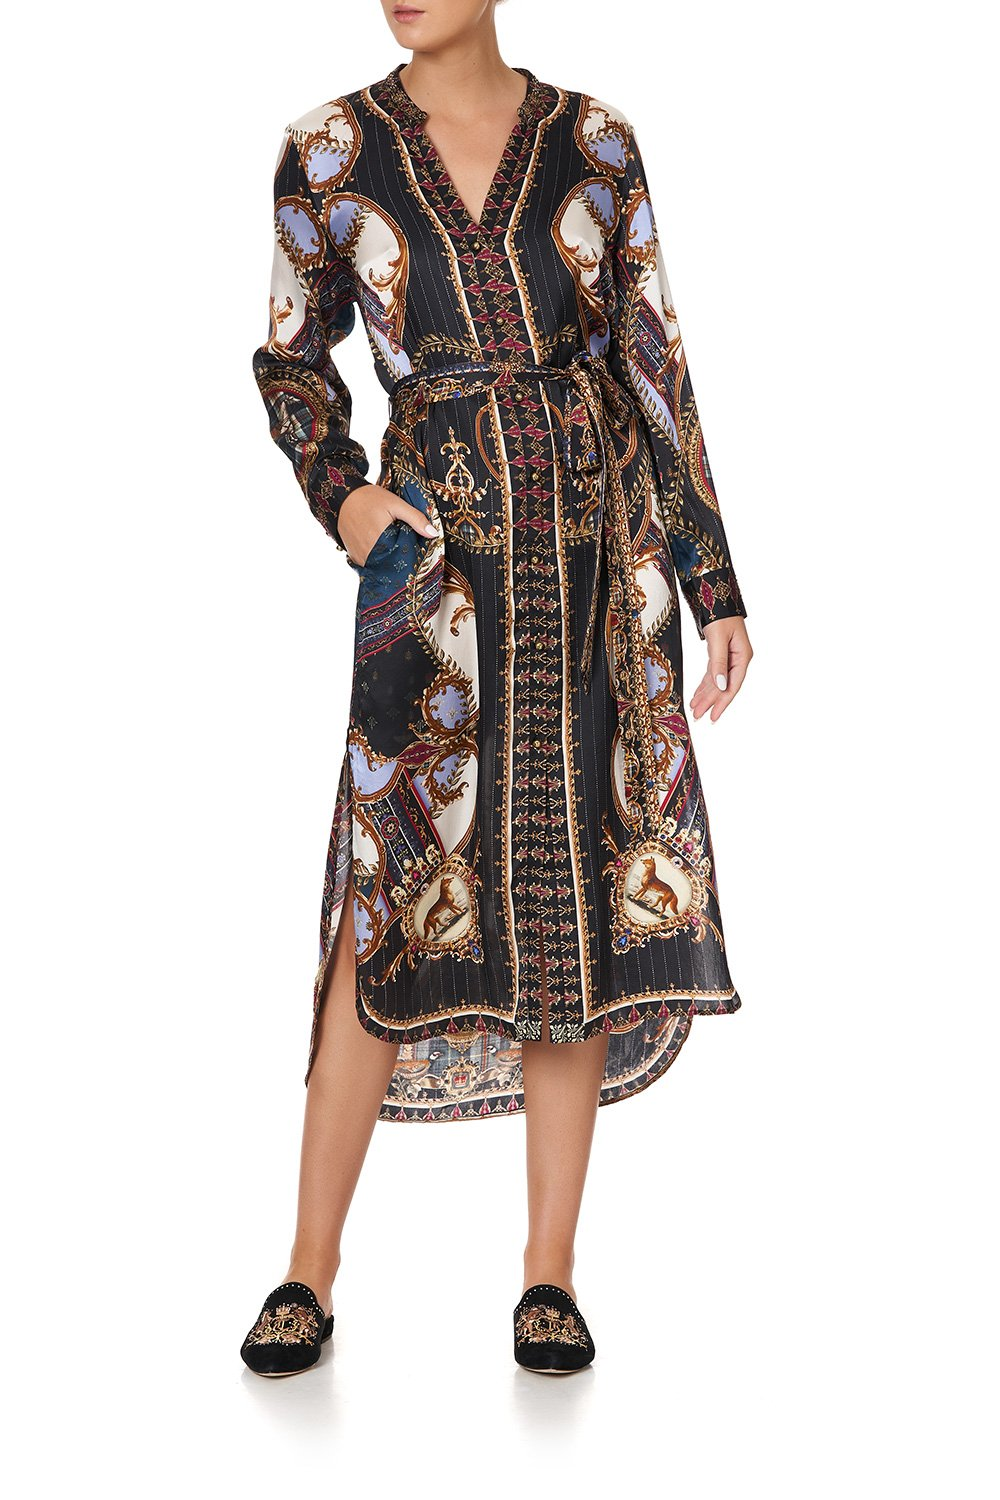 MID LENGTH SHIRT DRESS DINING HALL DARLING